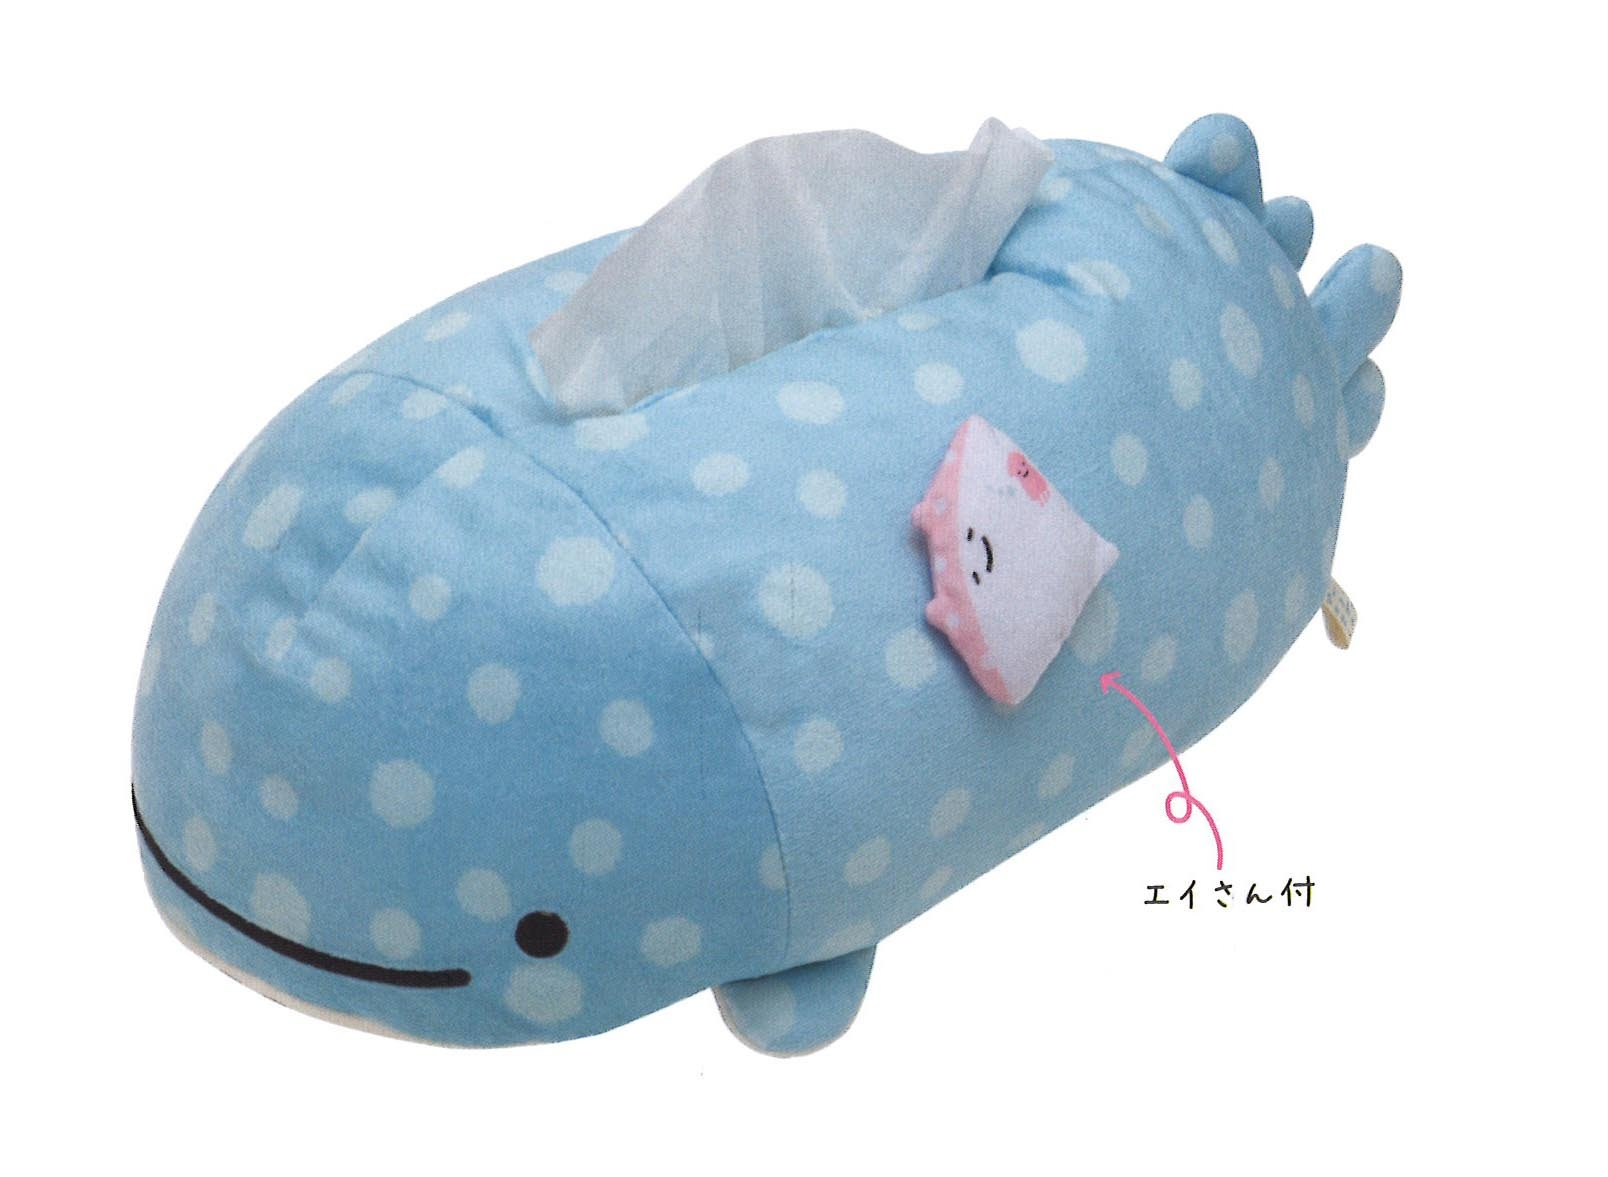 Dust baby feed me plush tissue cover KF88301